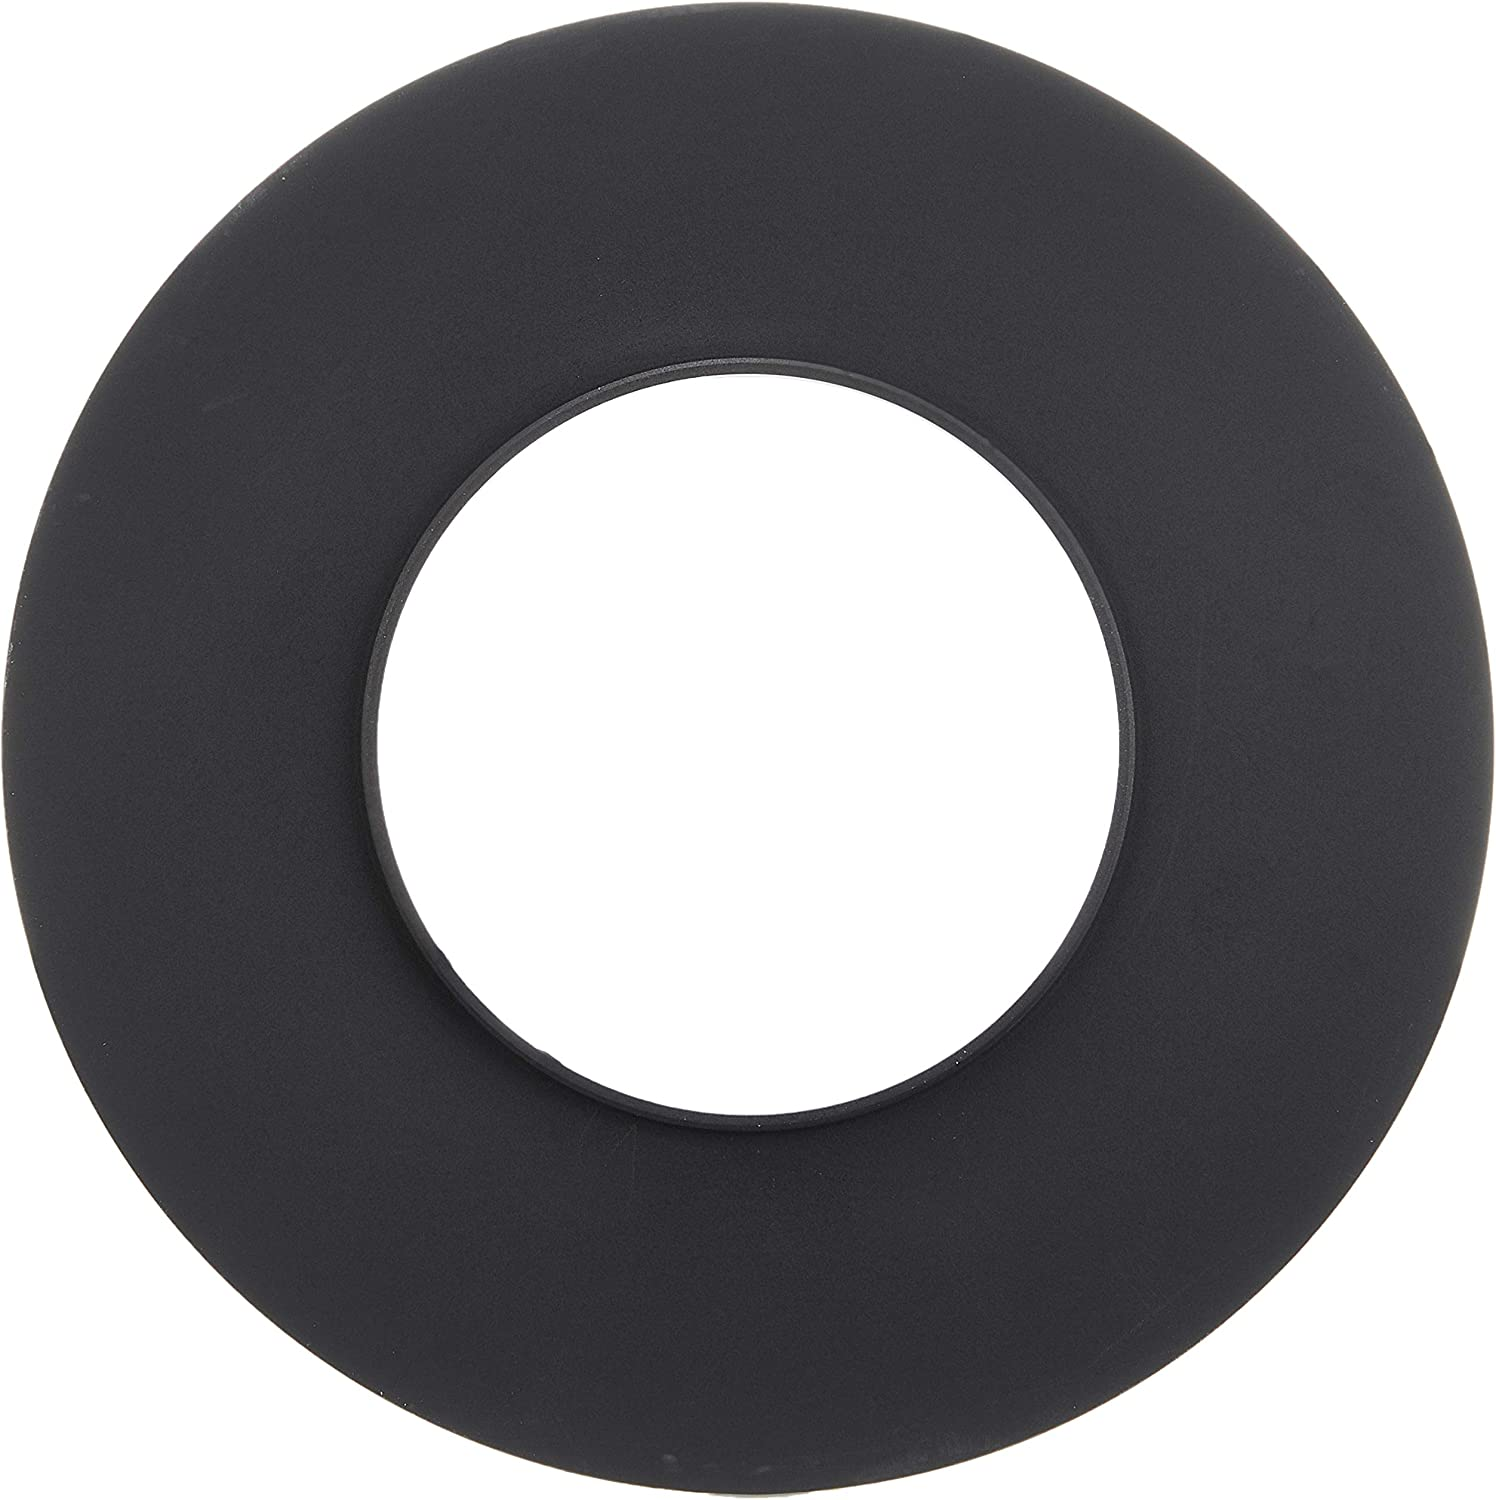 Cokin 82mm Adaptor Ring for XL X Series Filter Holder